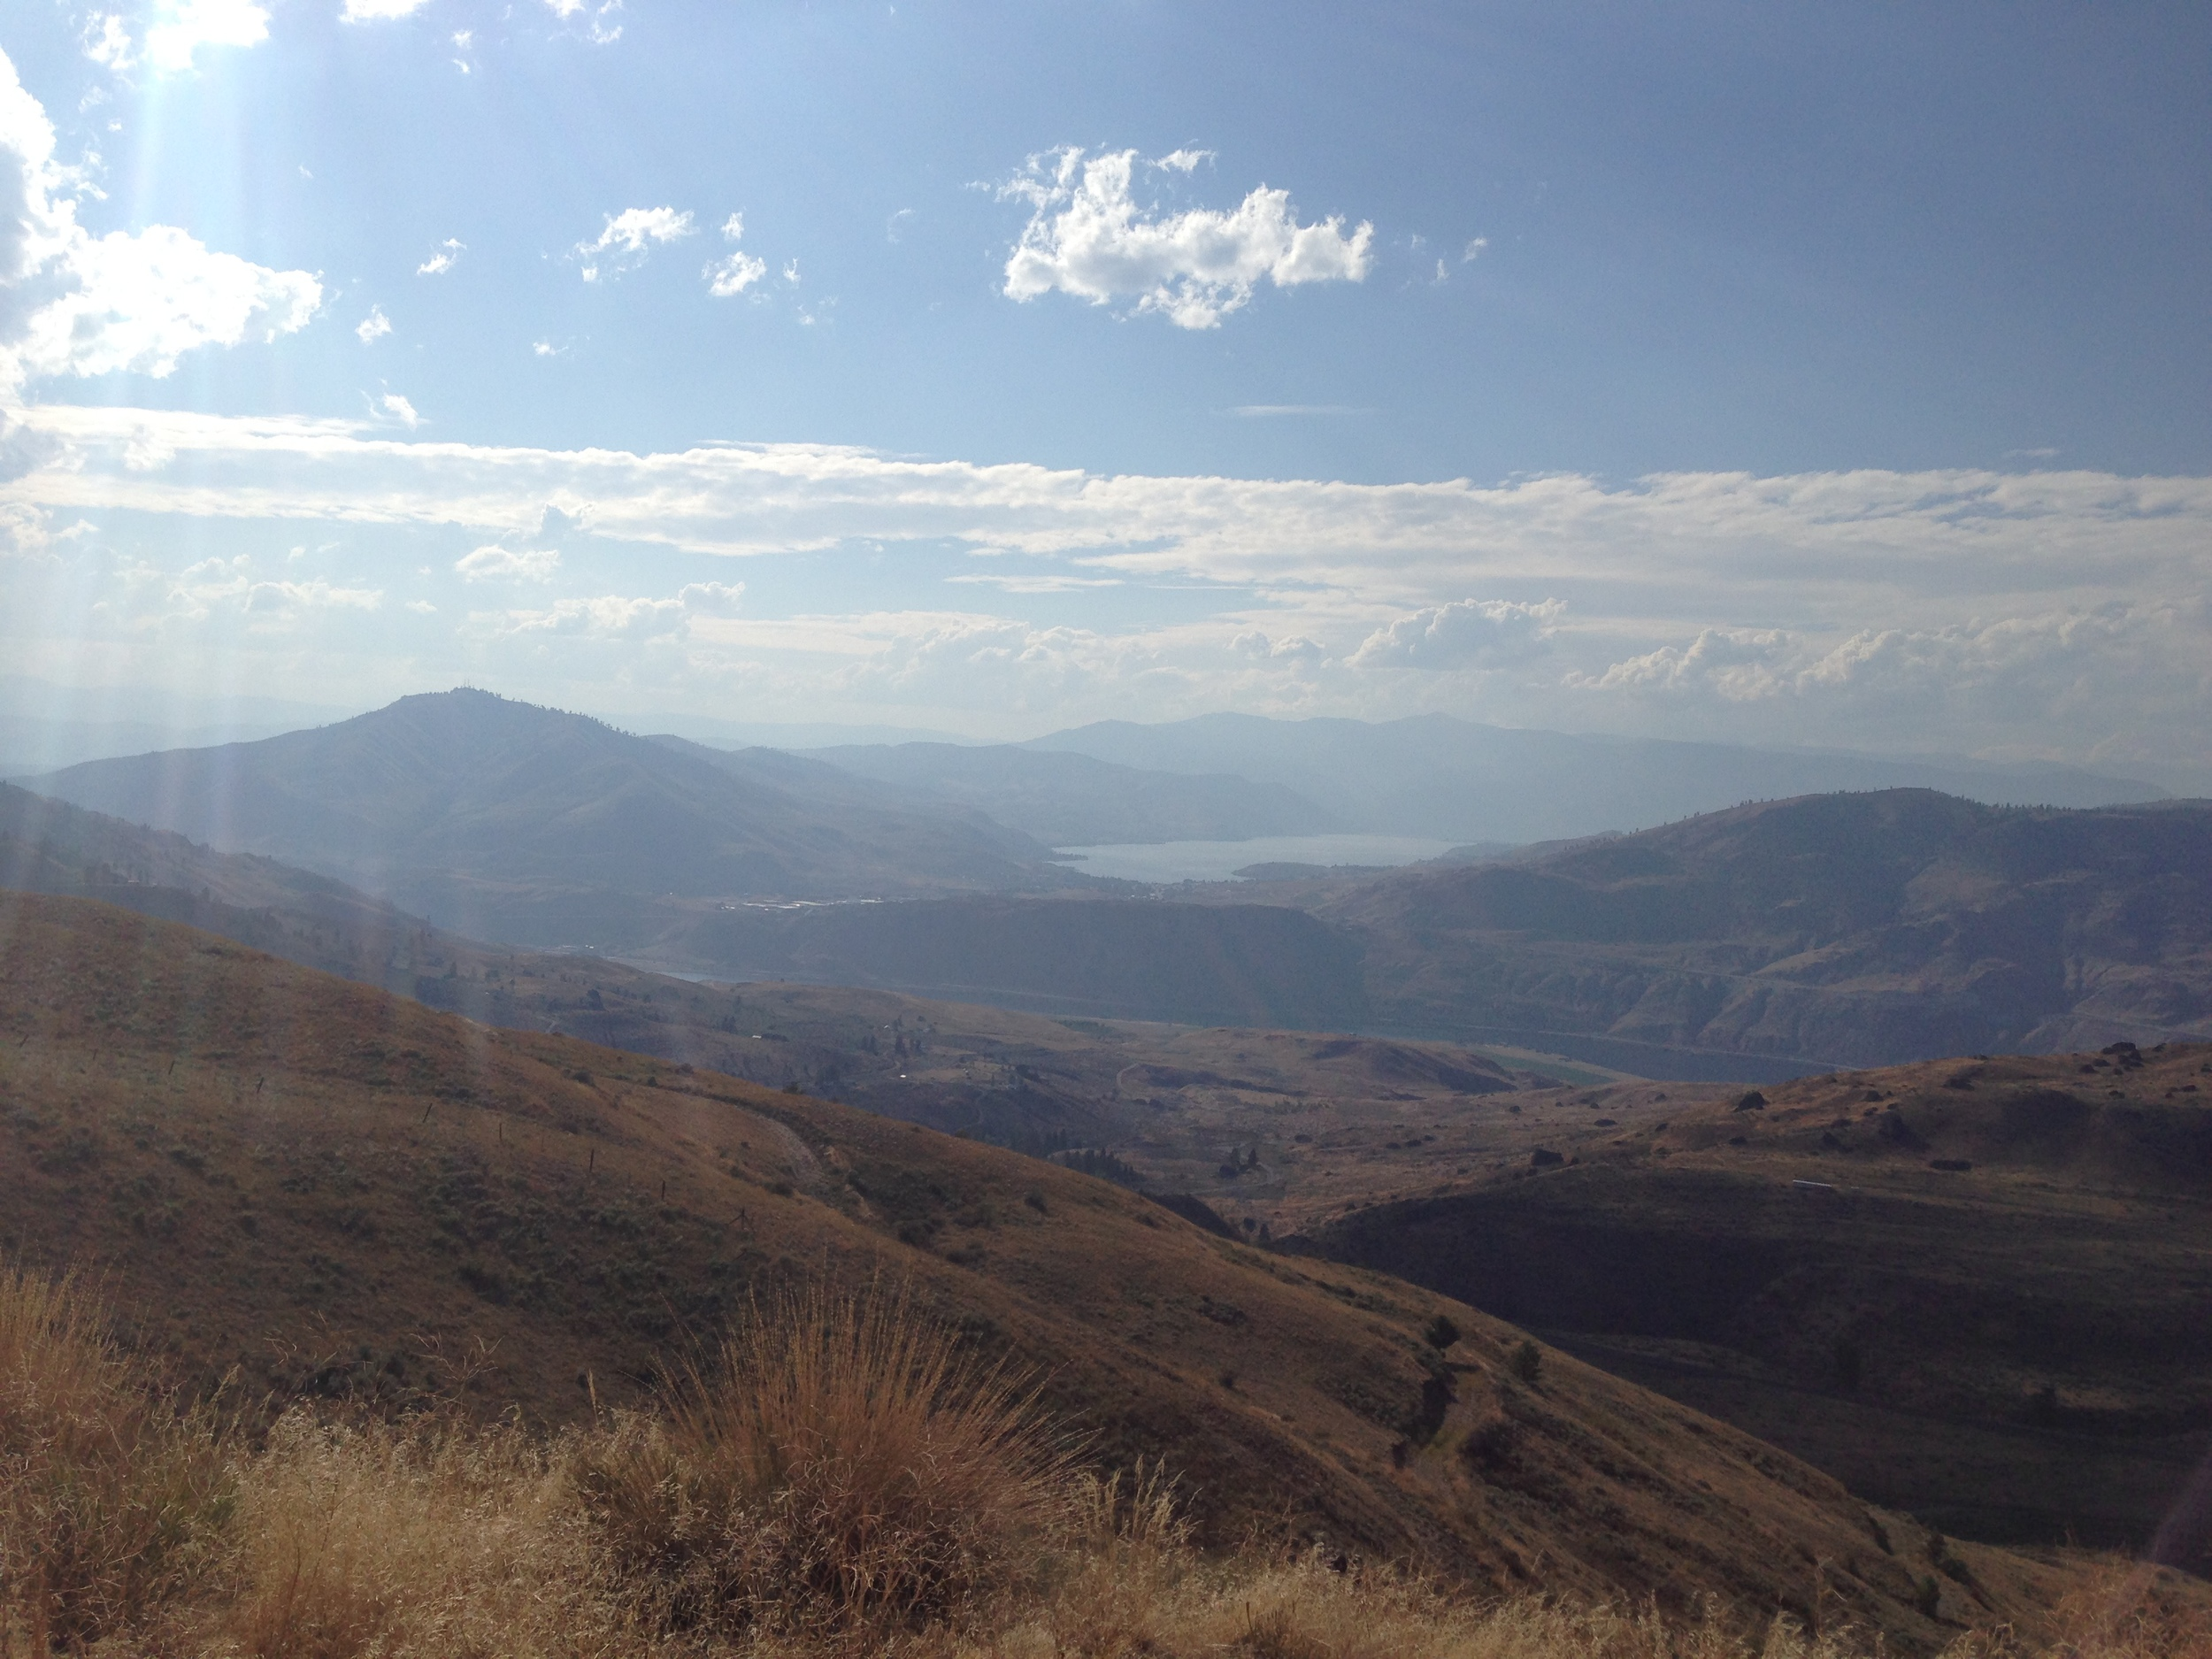 McNeil Canyon leading down to the Columbia River (not really visible) andLake Chelan in the distance.